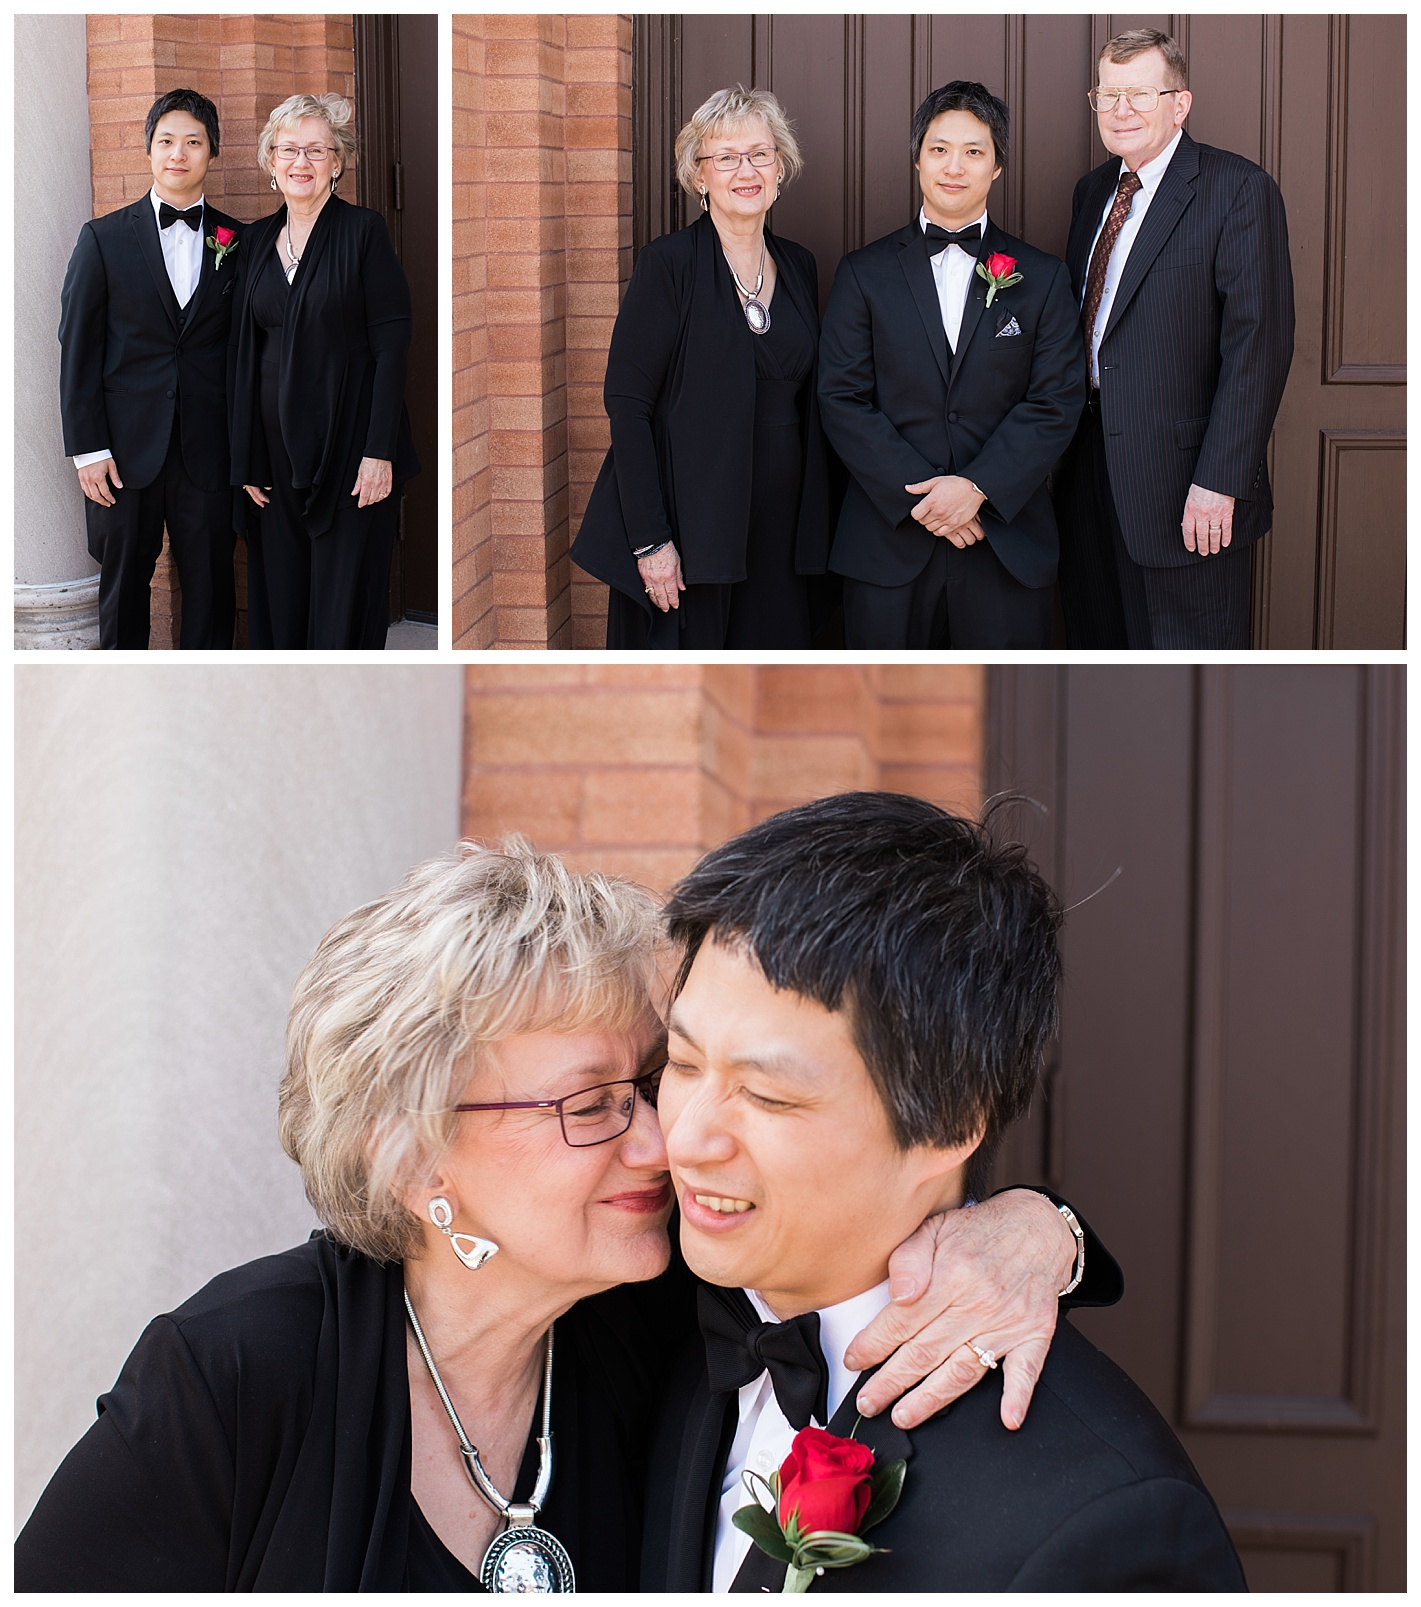 Kevin's Mom and Dad arrived as we were taking his portraits. I love this sweet candid moment of him and his Mom. Kevin's expression is priceless, typical guy.